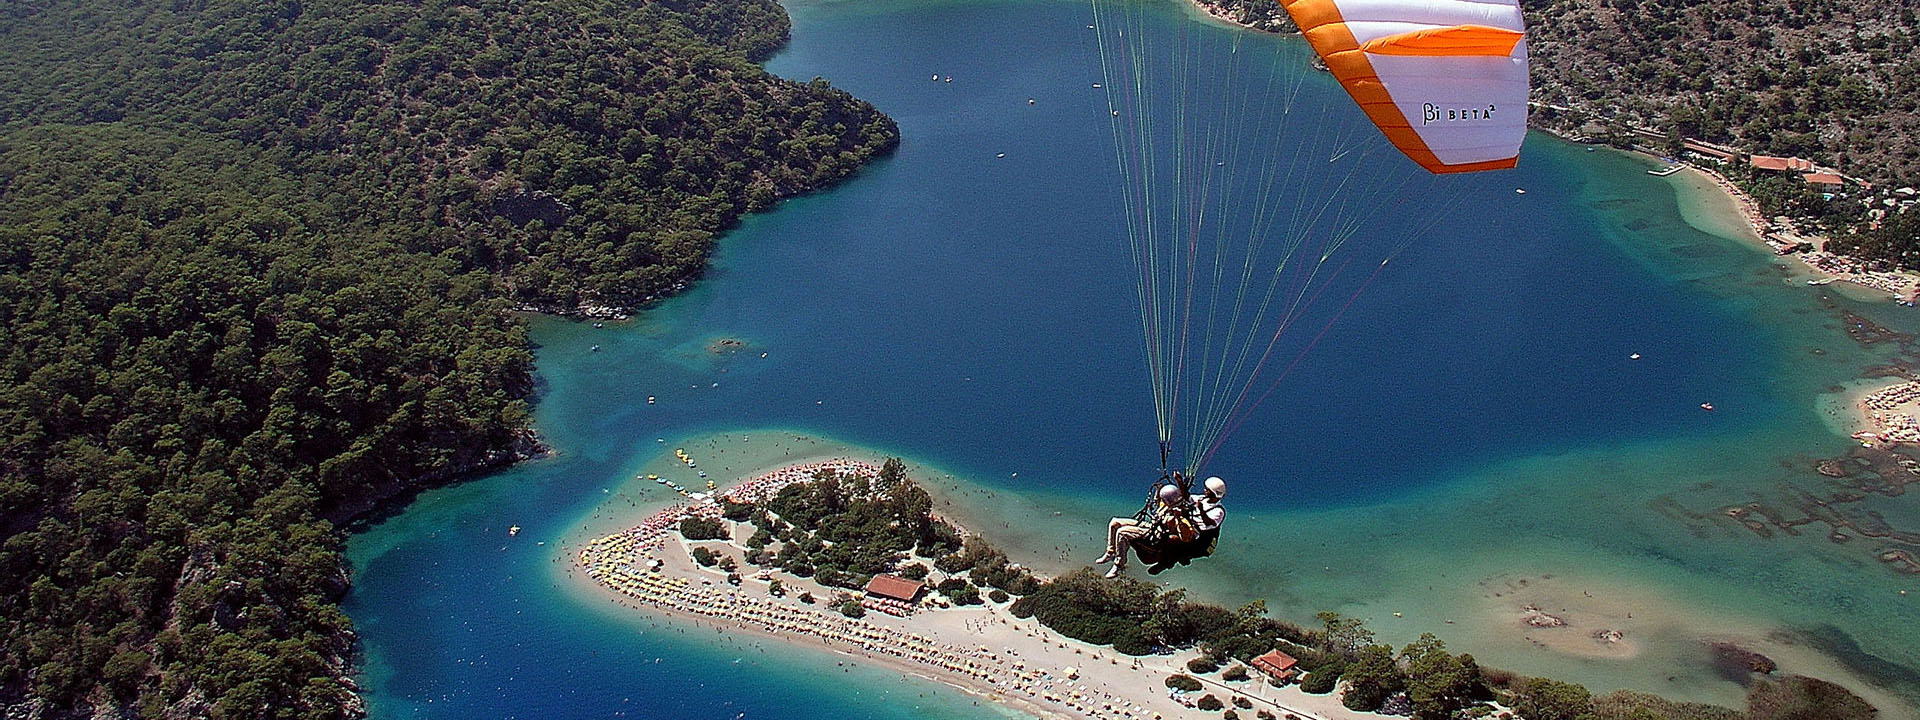 dating in fethiye turkey Turkey expat forum: forum for expats living in turkey on expat exchange moving to turkey already living in turkey talk with other expats on the forum, read past discussions about topics.